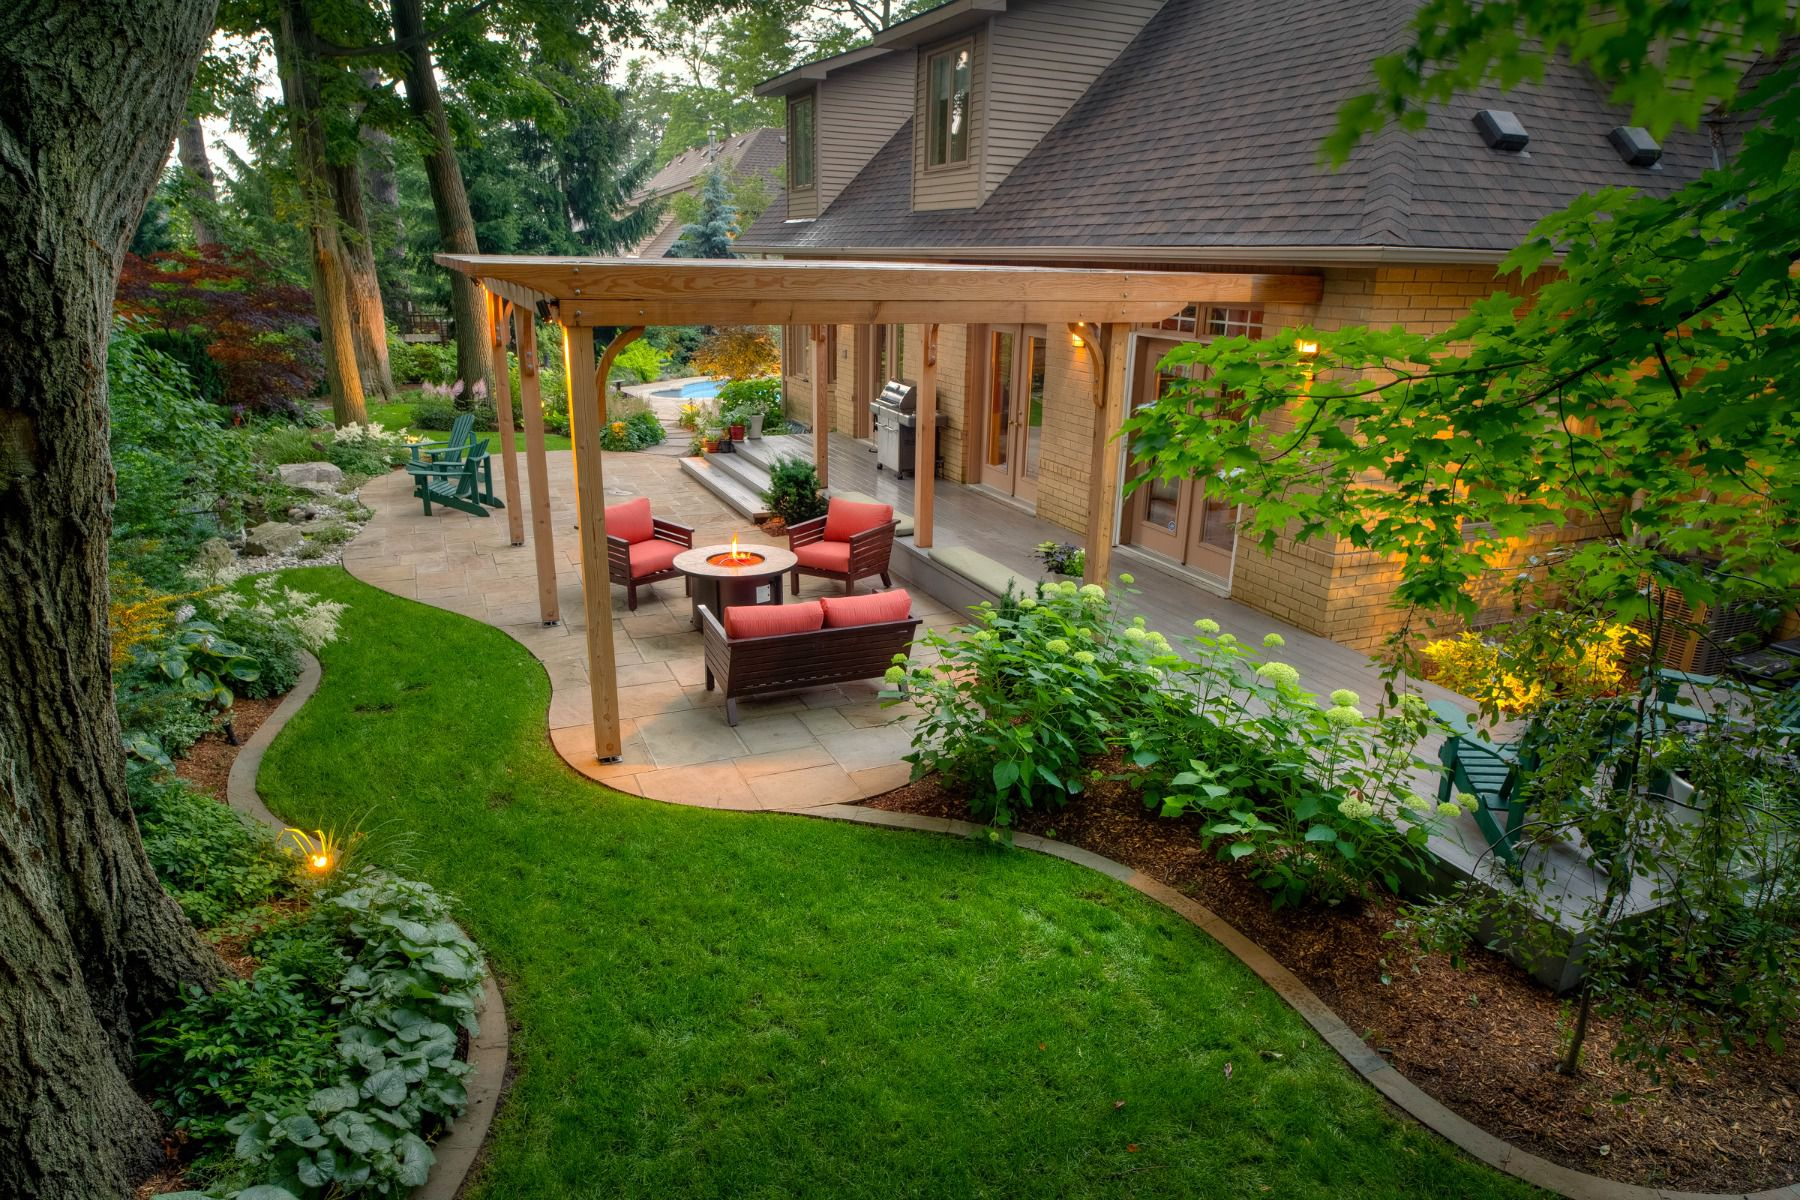 50 Backyard Landscaping Ideas To Inspire You intended for Backyard Landscape Pictures